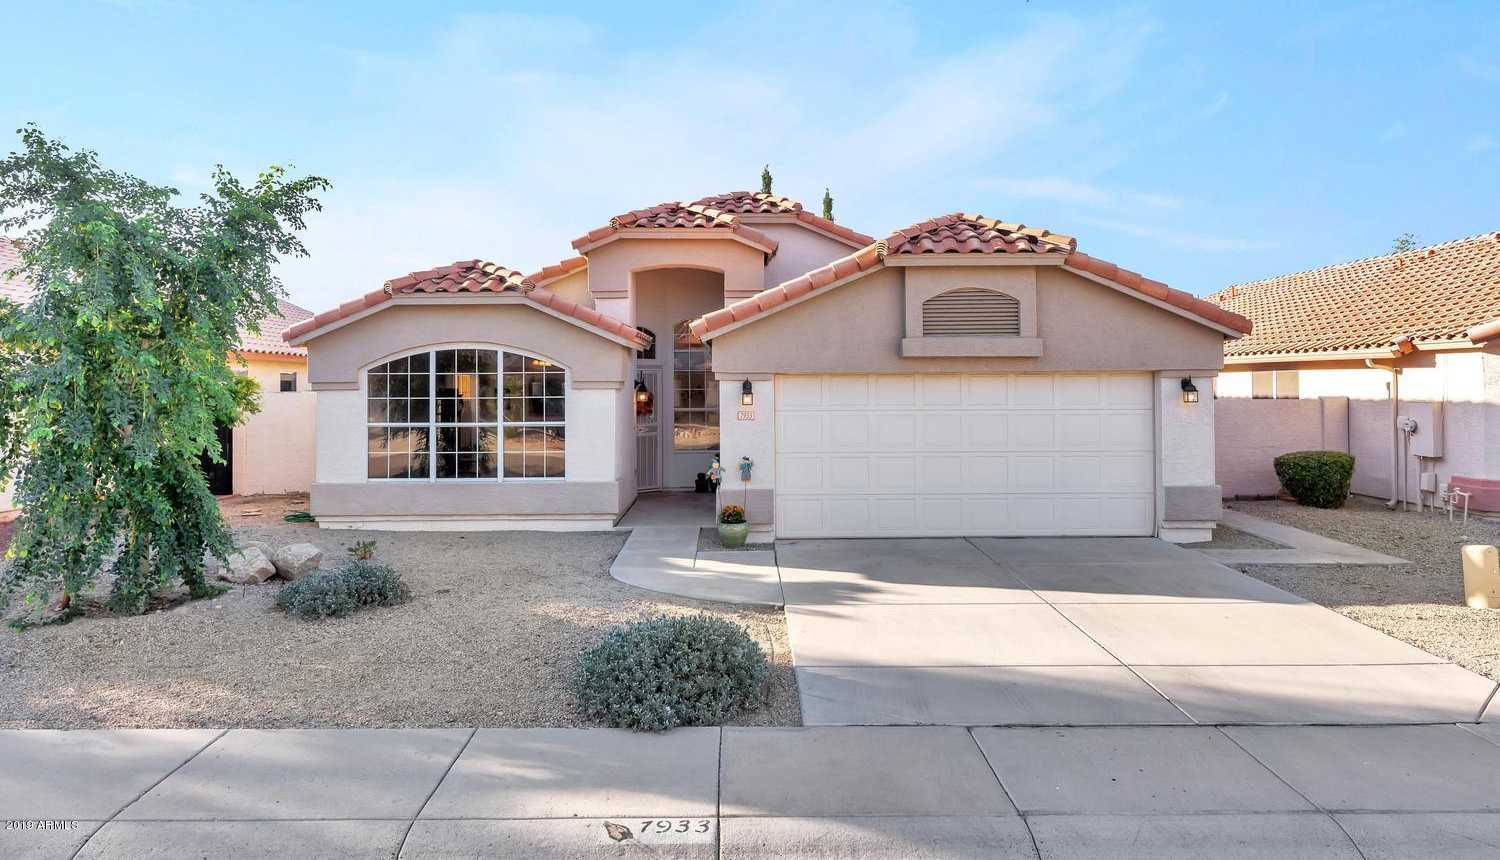 $324,900 - 4Br/2Ba - Home for Sale in Continental At Arrowhead Ranch, Glendale